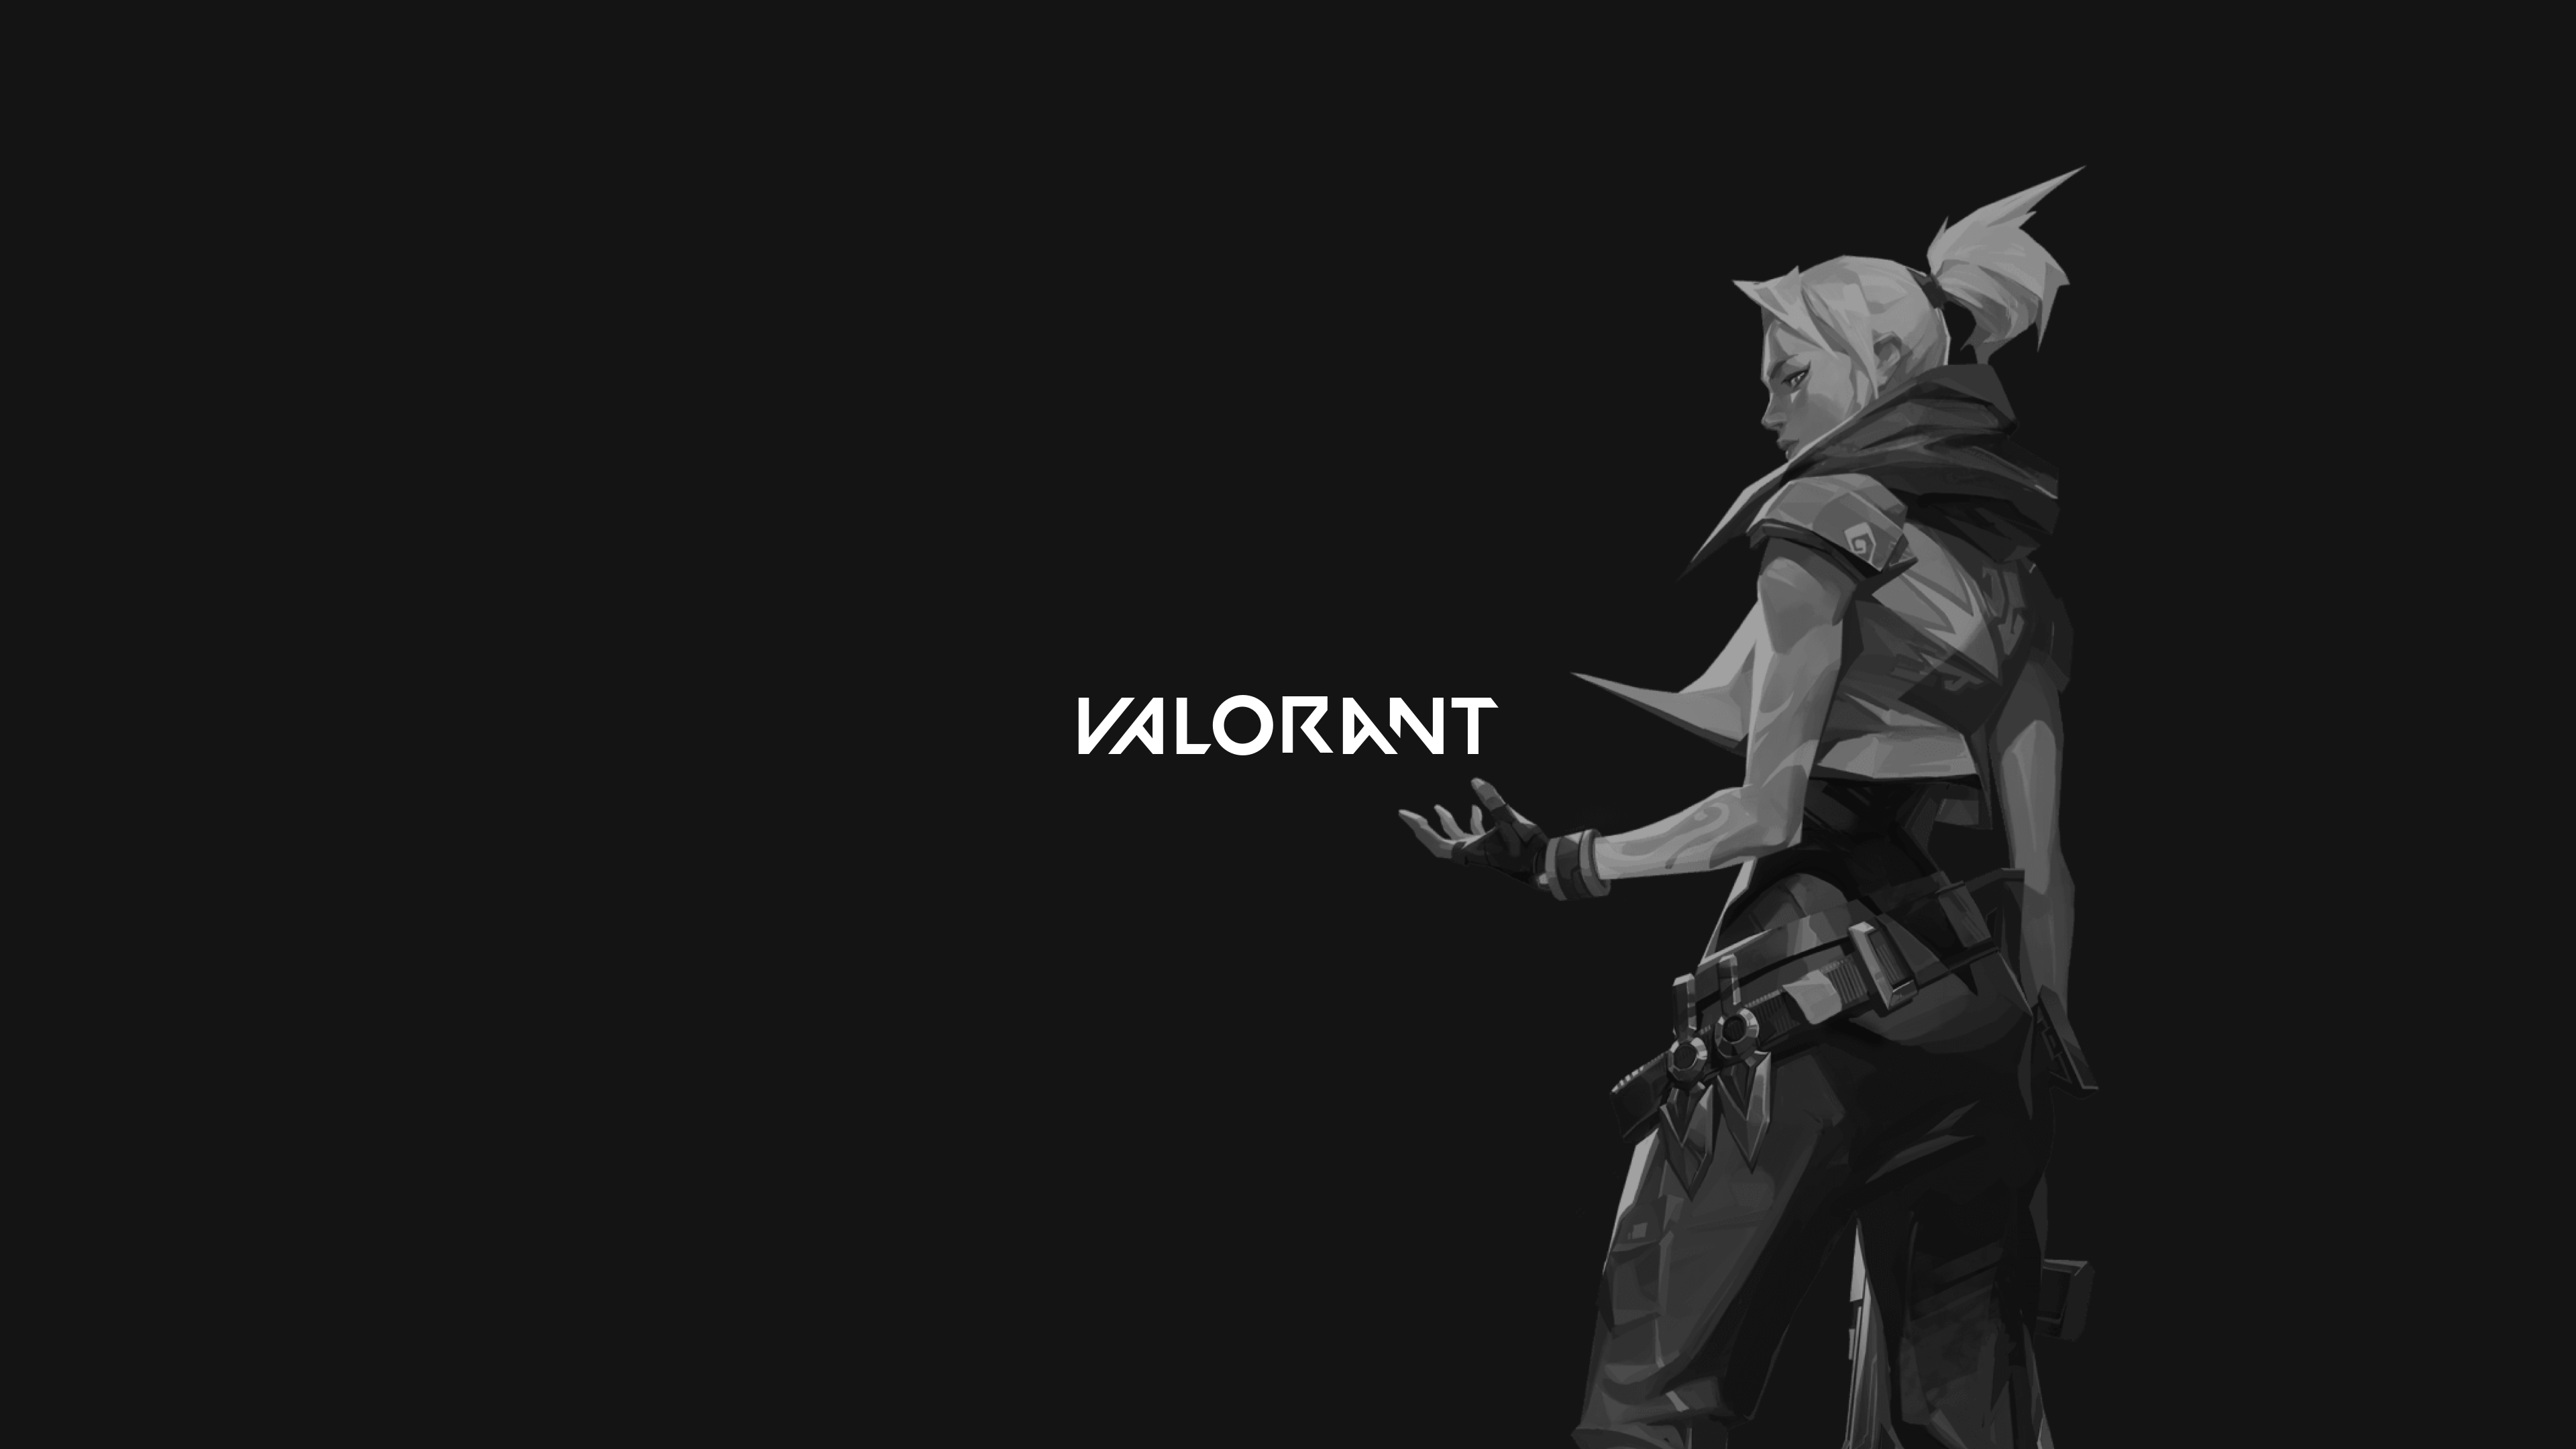 Minimal Valorant Wallpapers